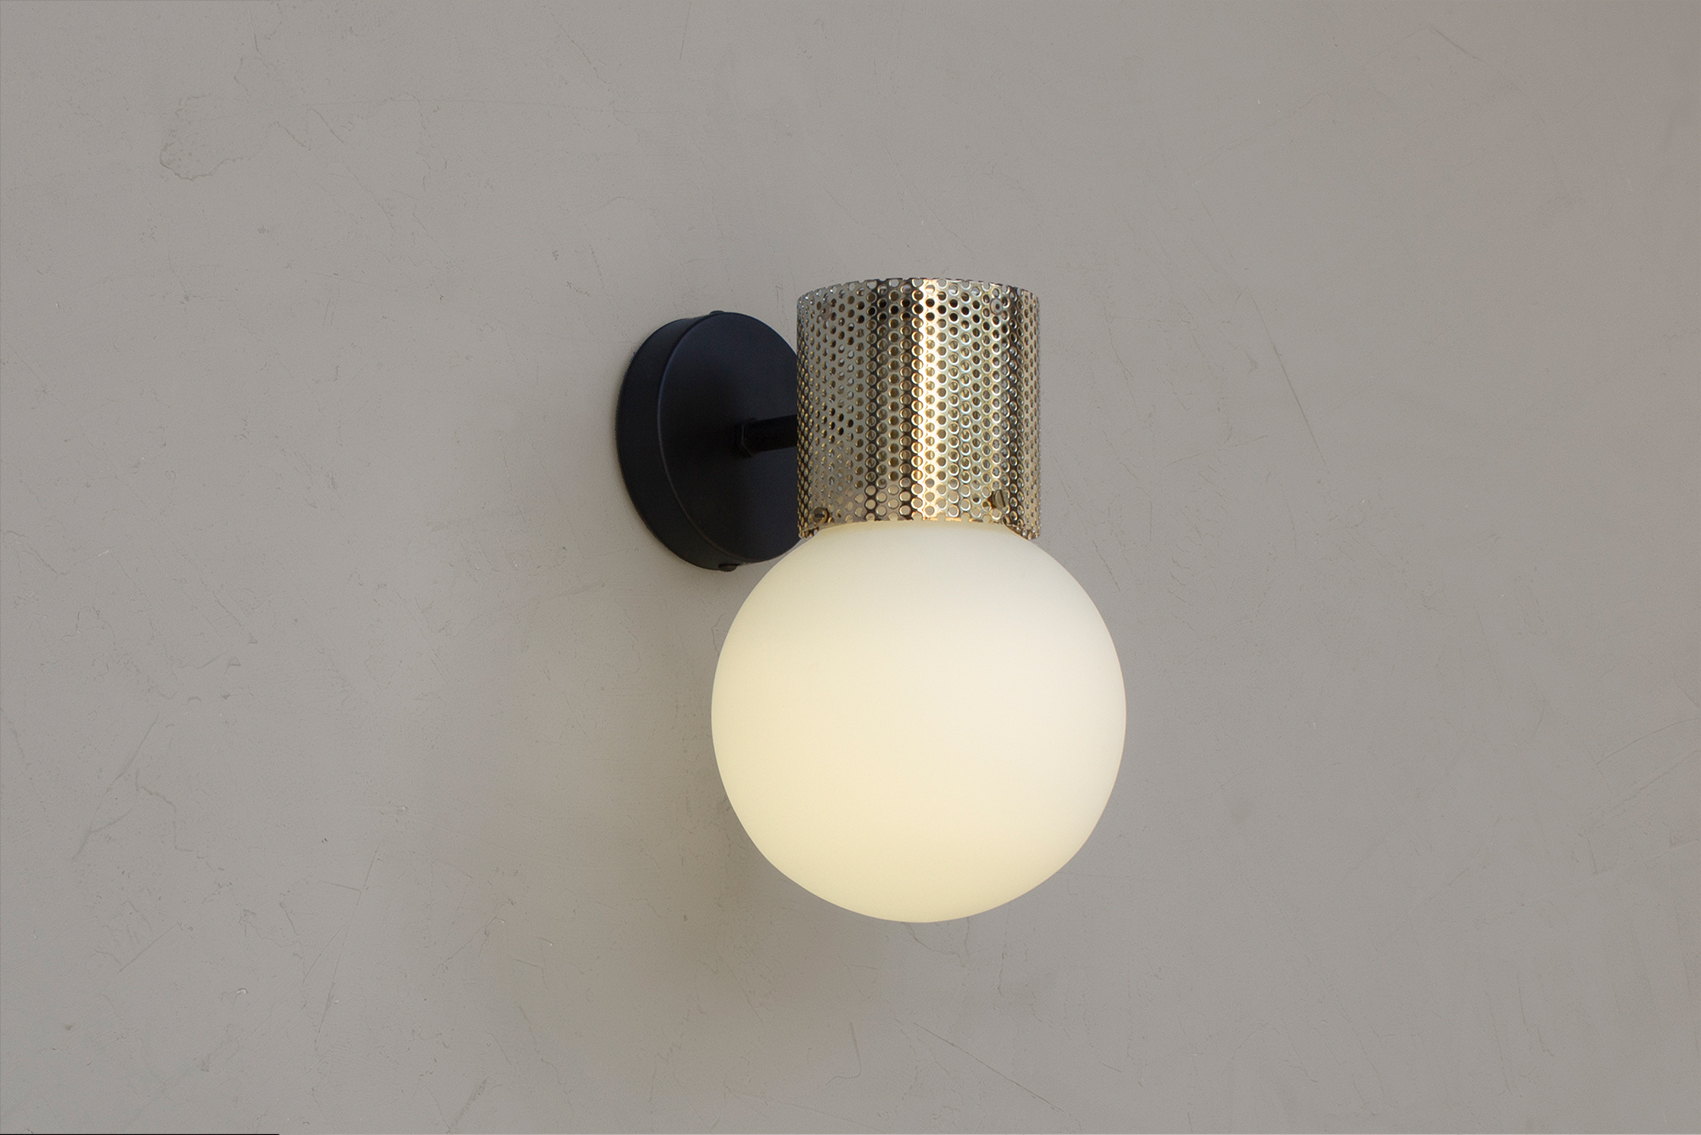 Perf wall sconce in brass -on